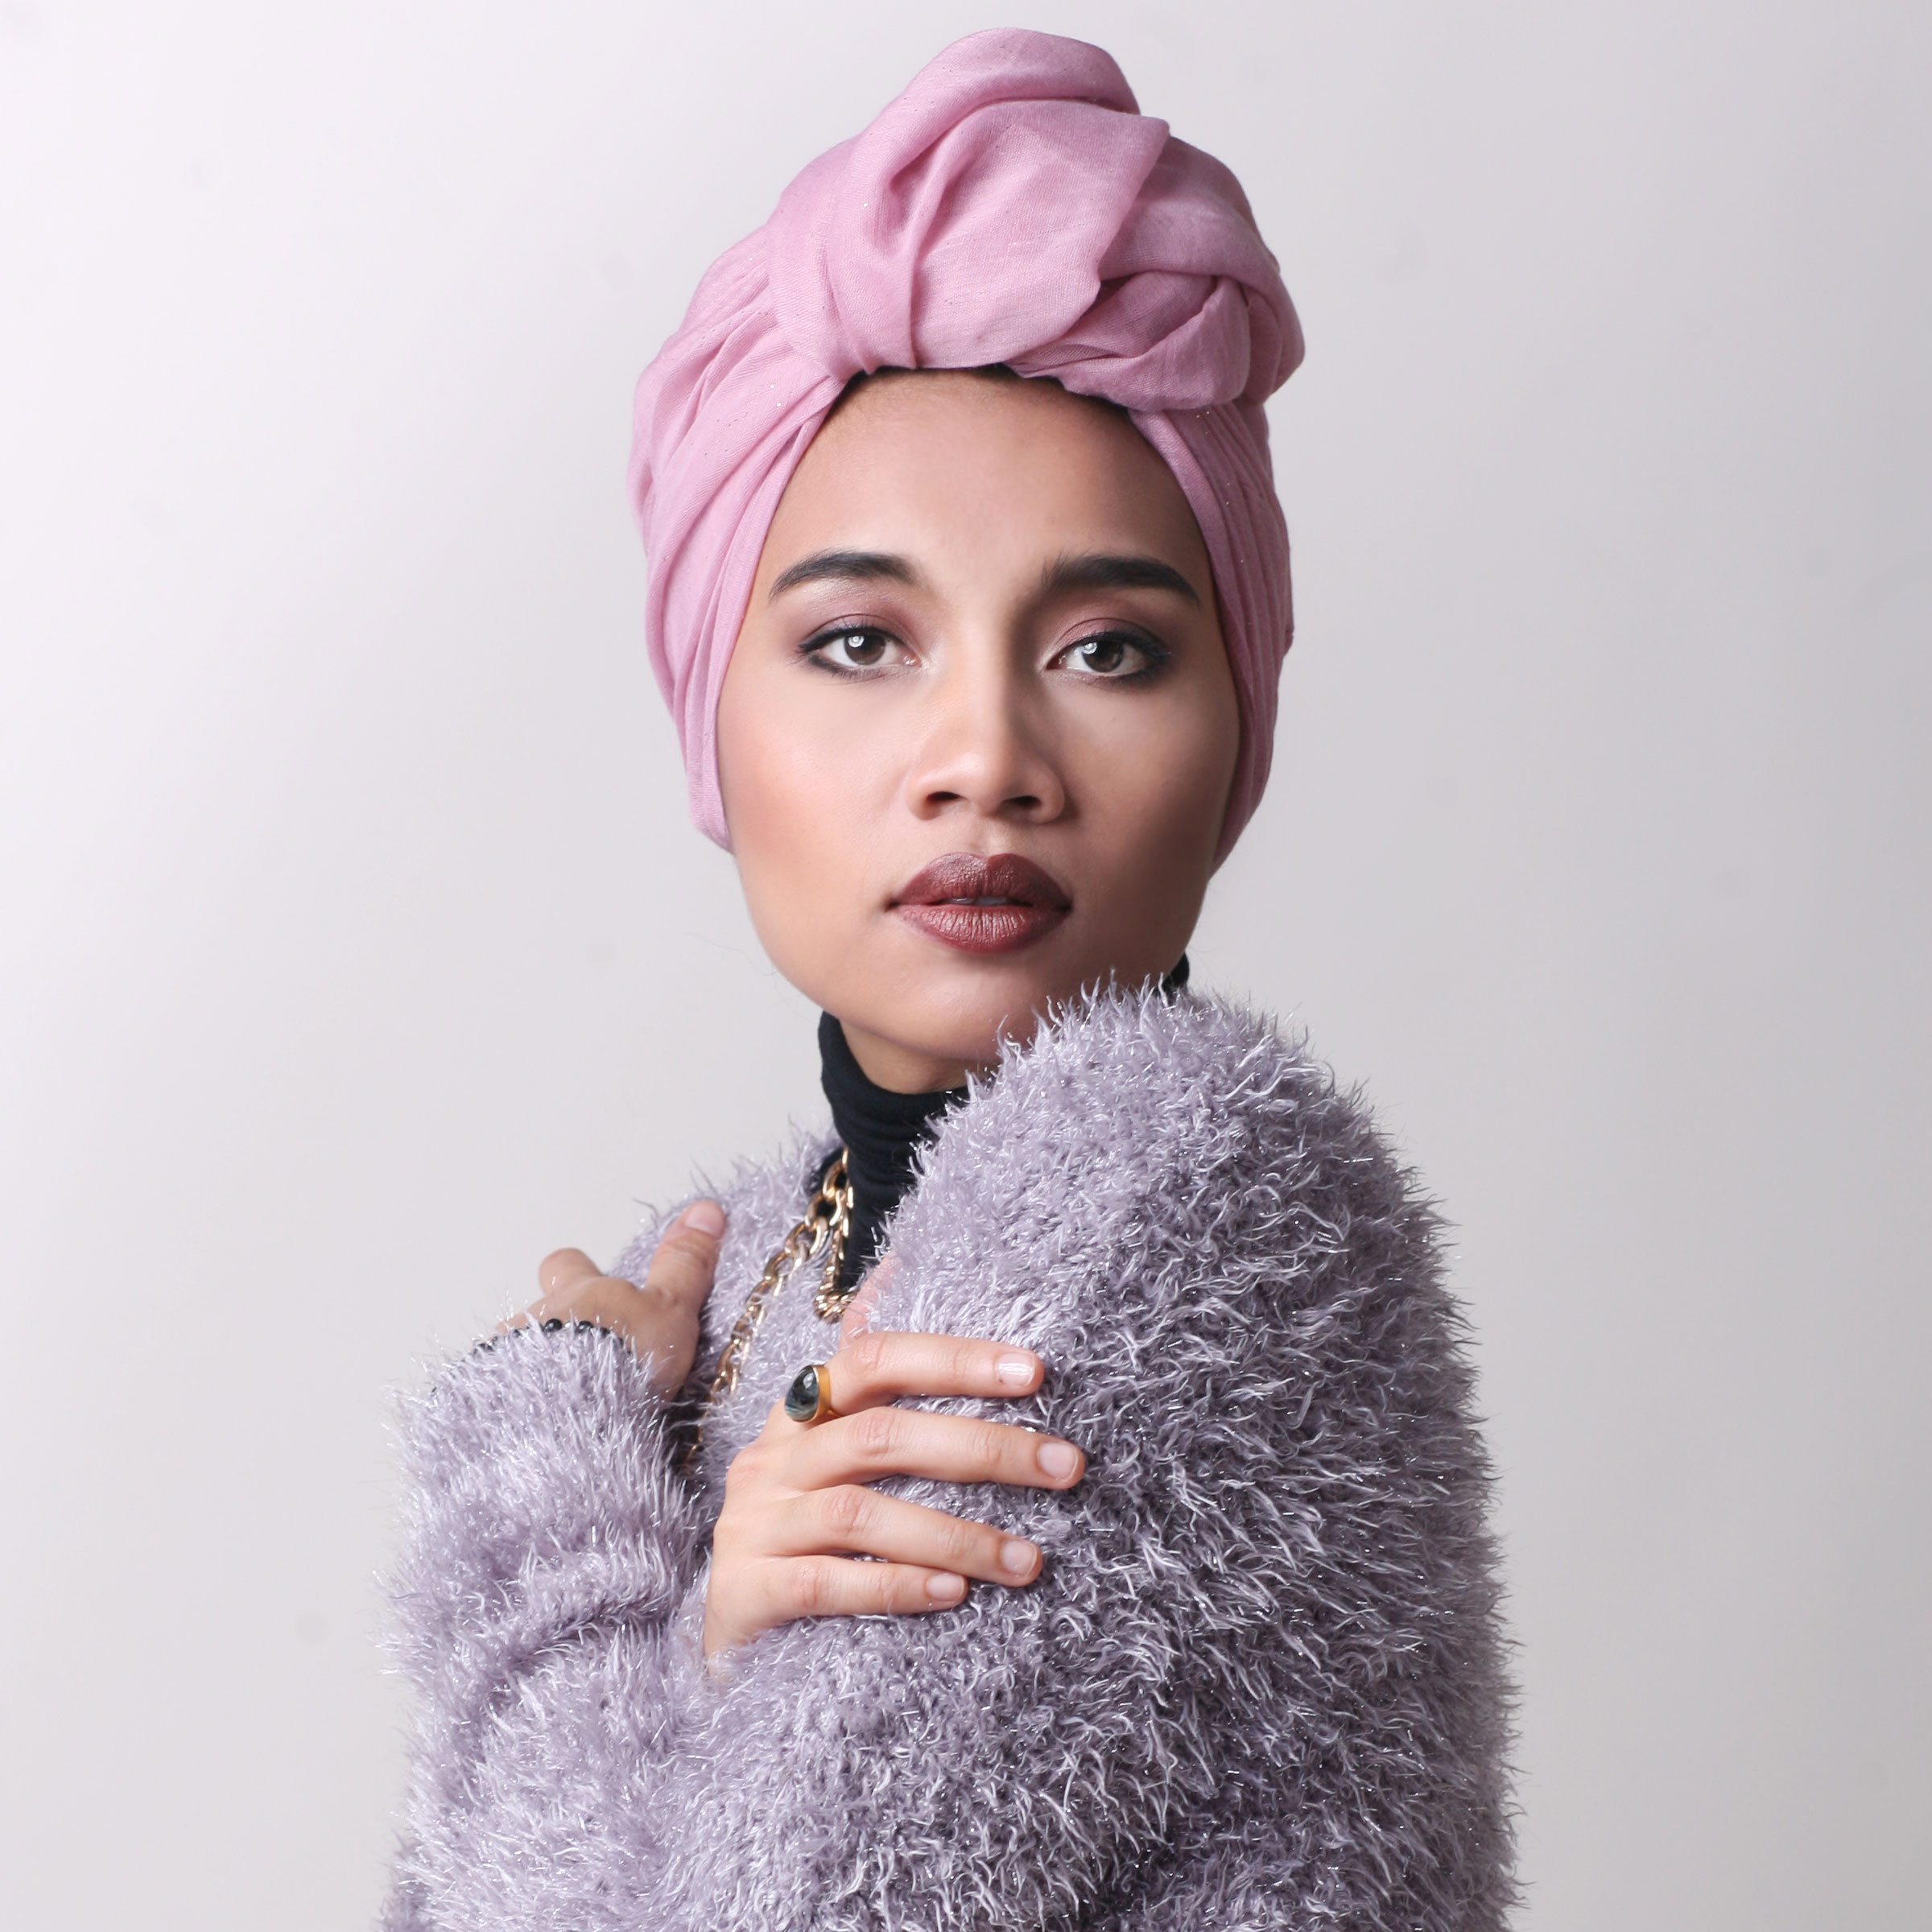 Yuna Broke Her Music Video Conversations About Her